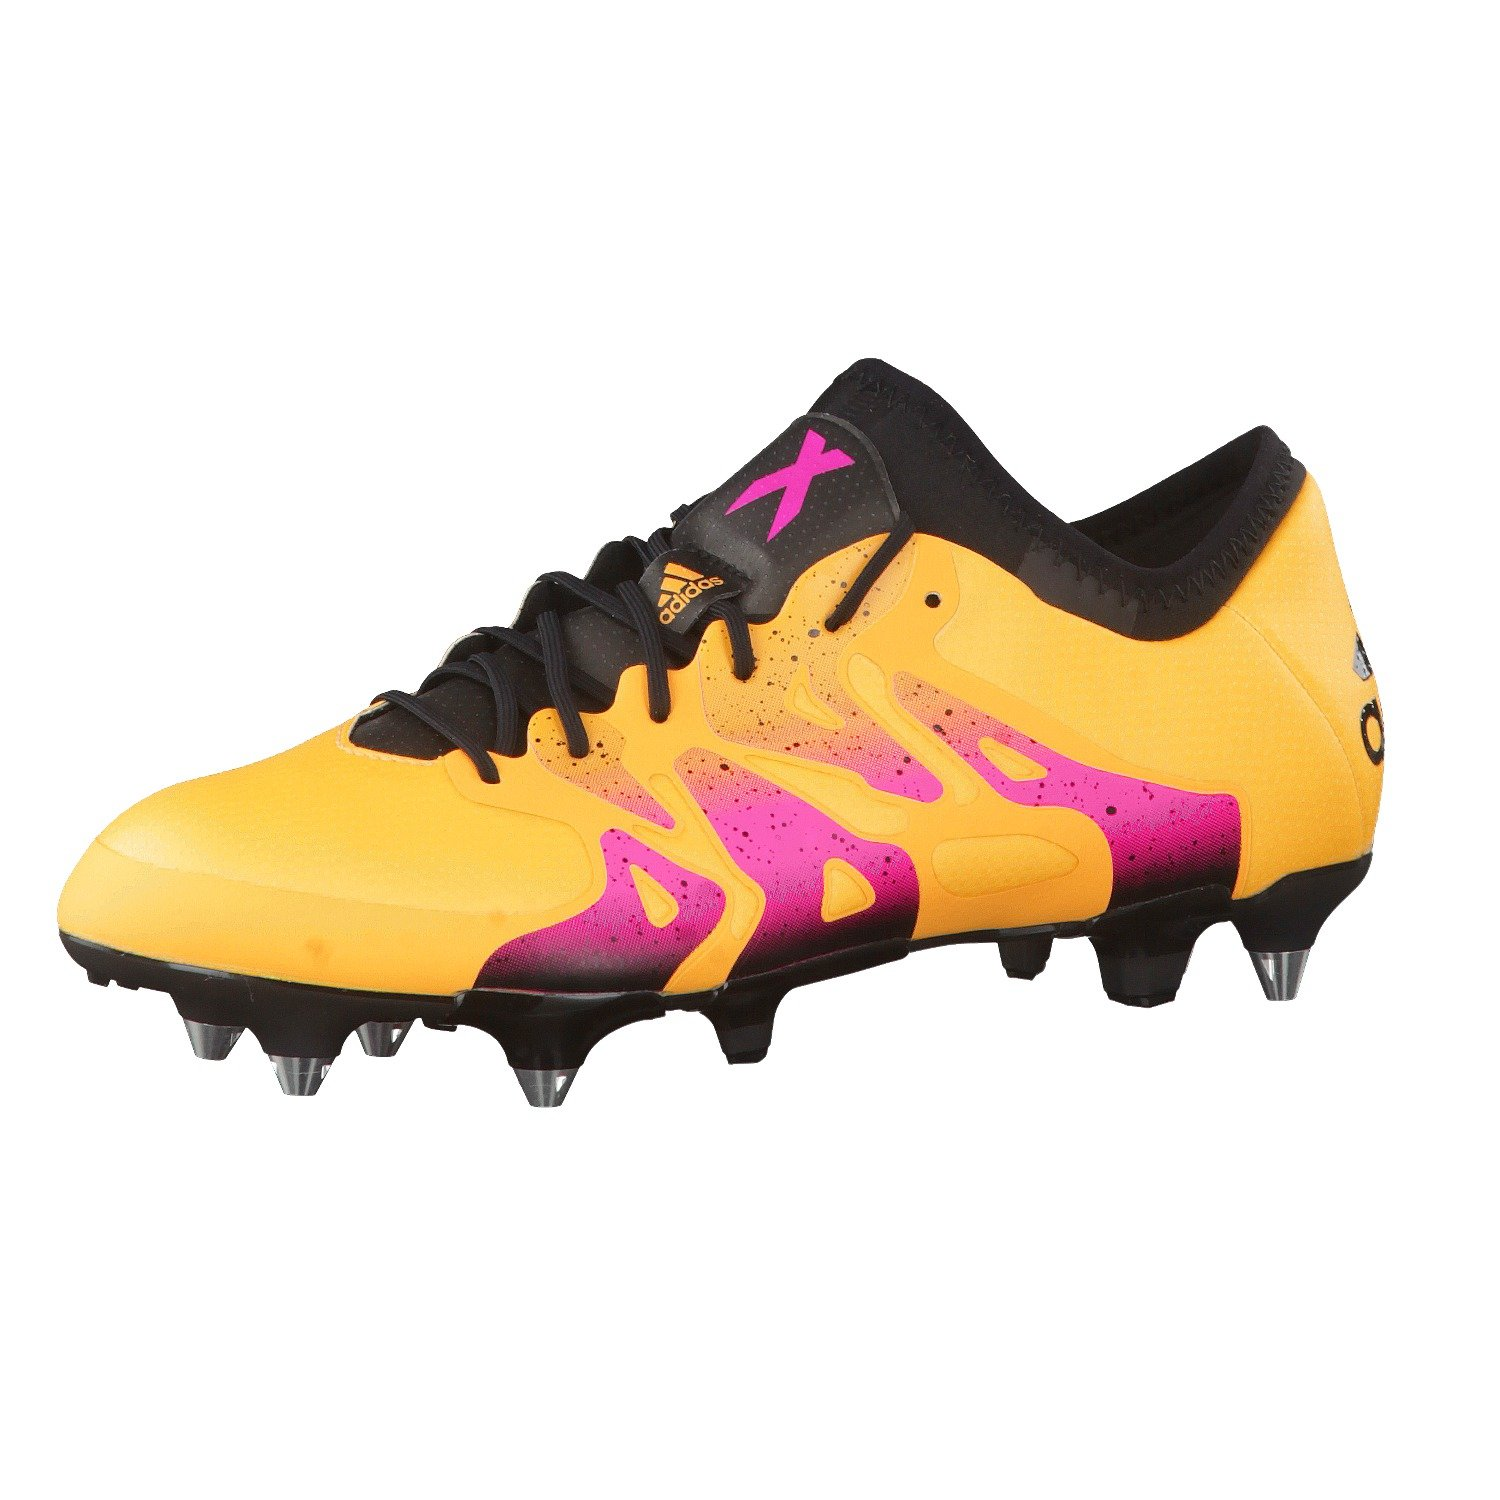 ADIDAS PERFORMANCE X15.1 SG - Chaussures de football -: Amazon.fr: Chaussures et Sacs